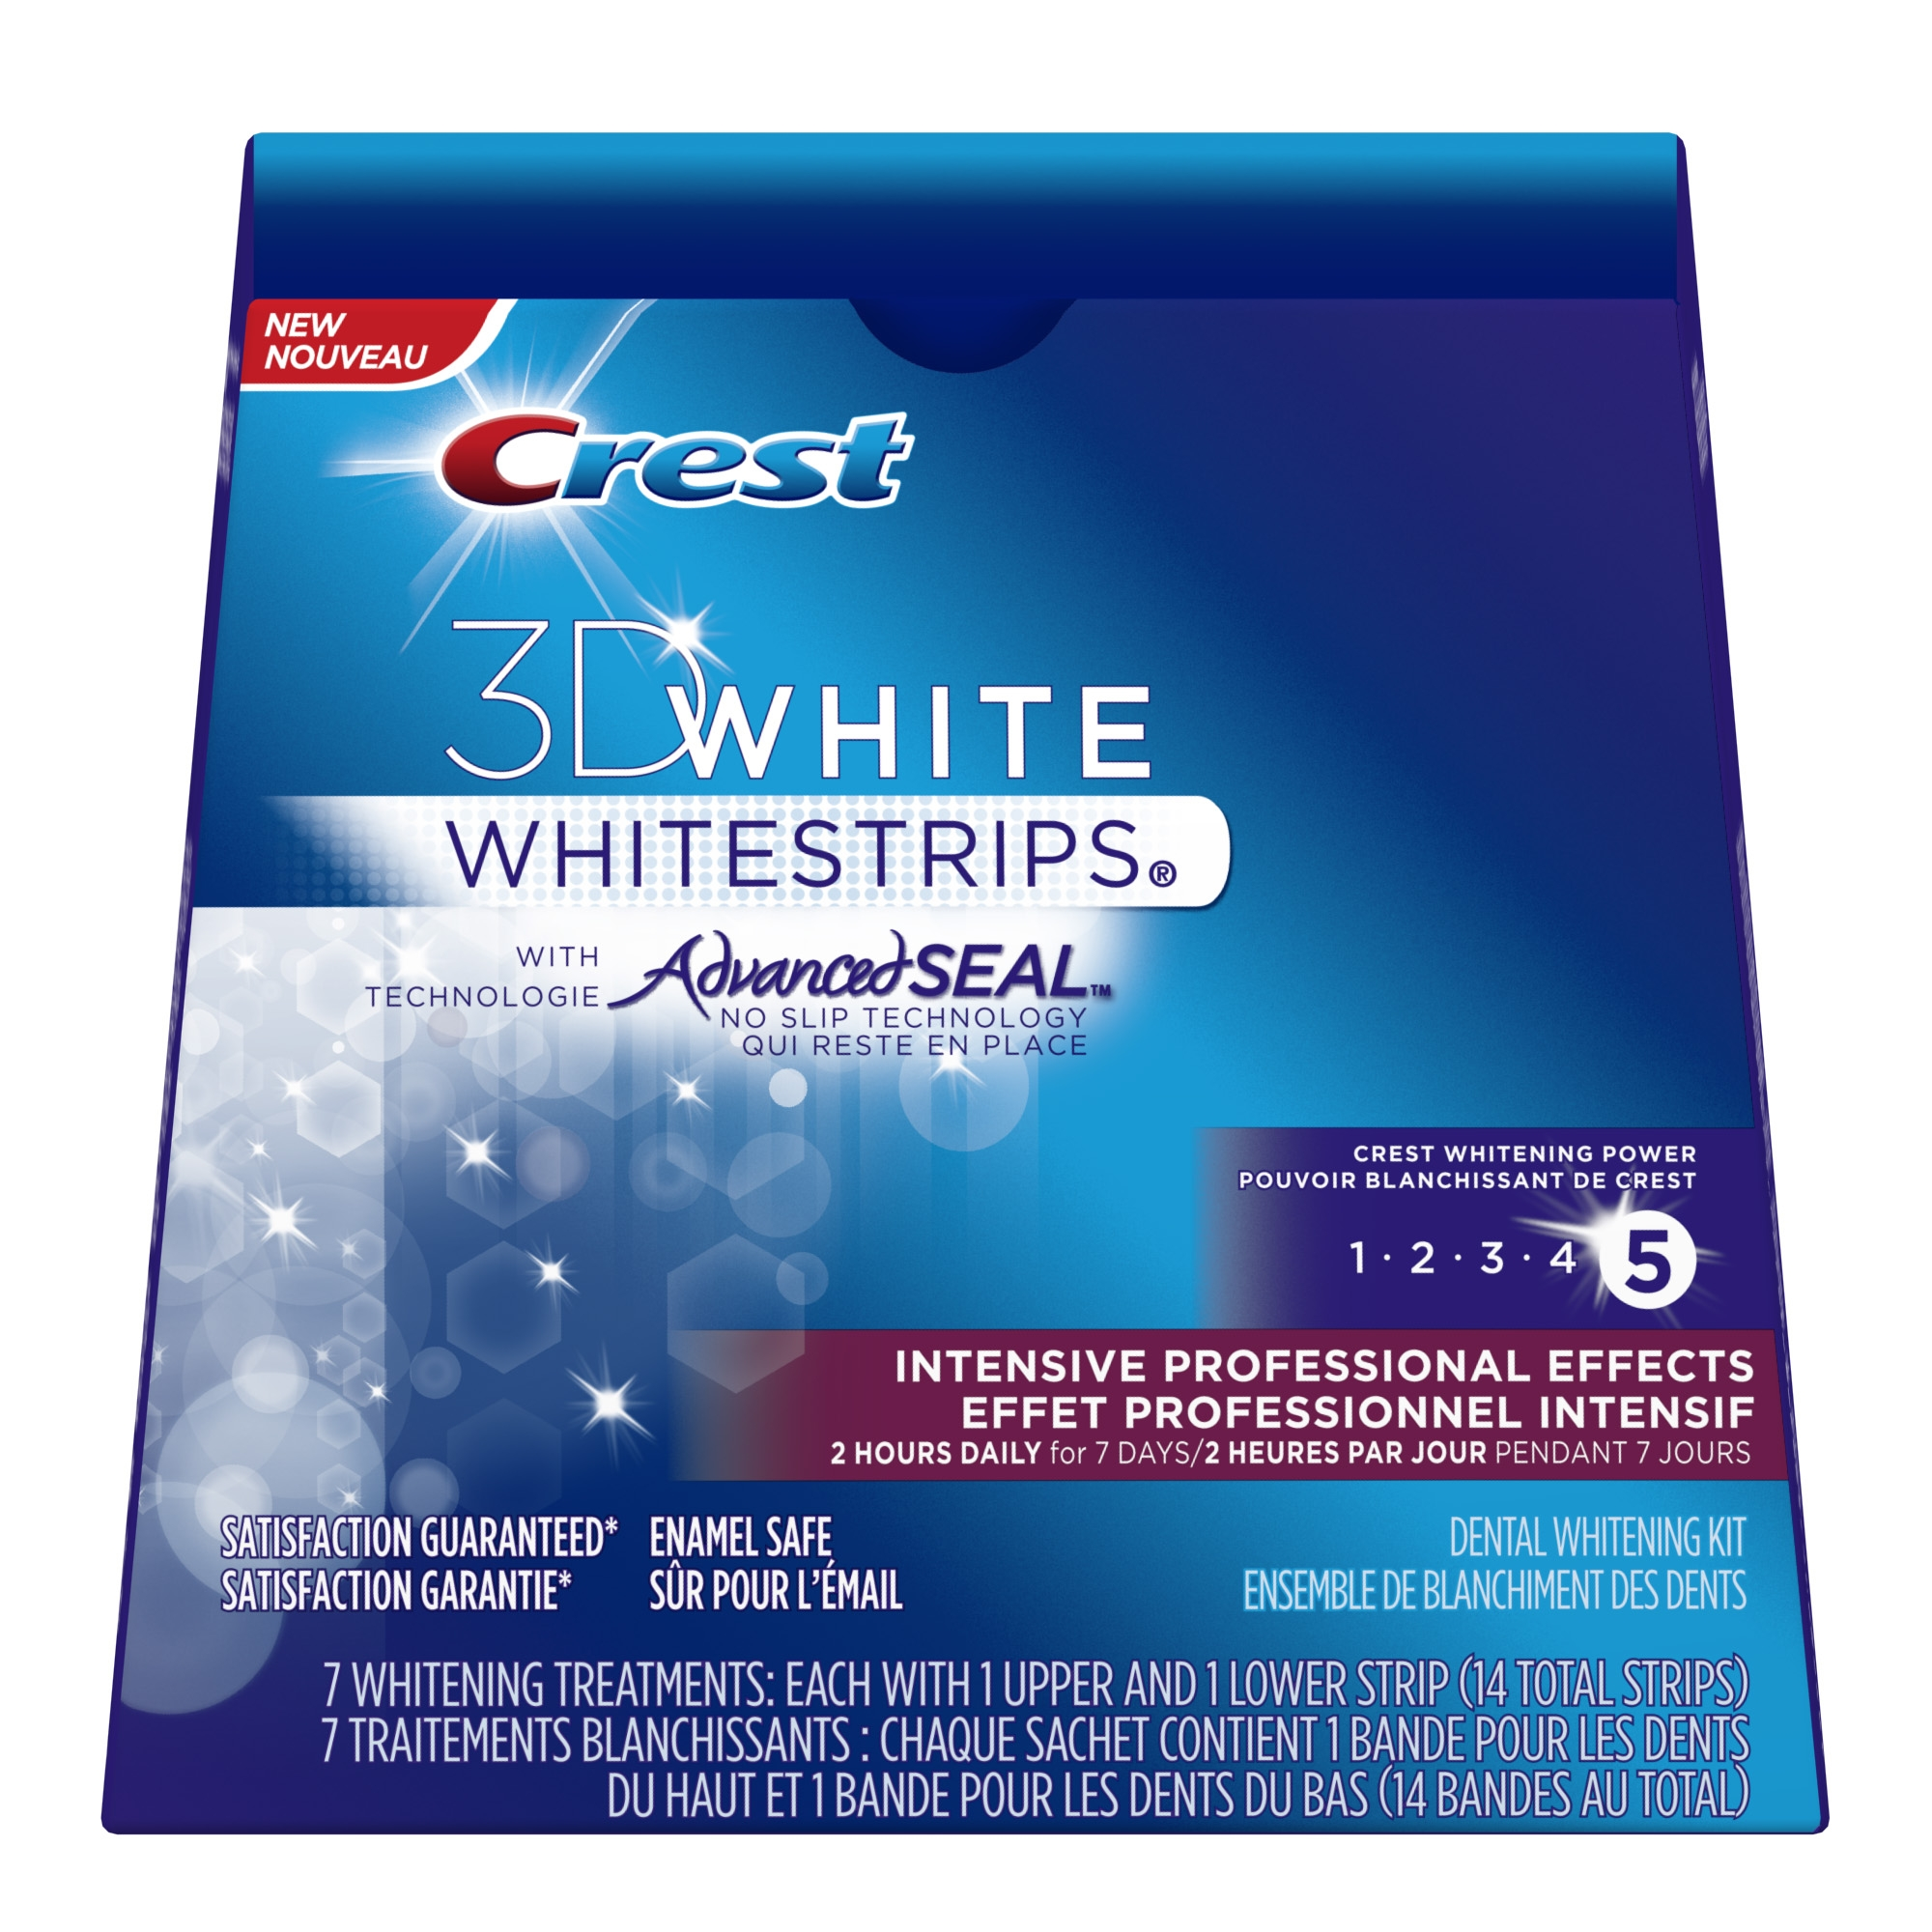 Crest 3DWhite Intensive Professional Effects Whitestrips